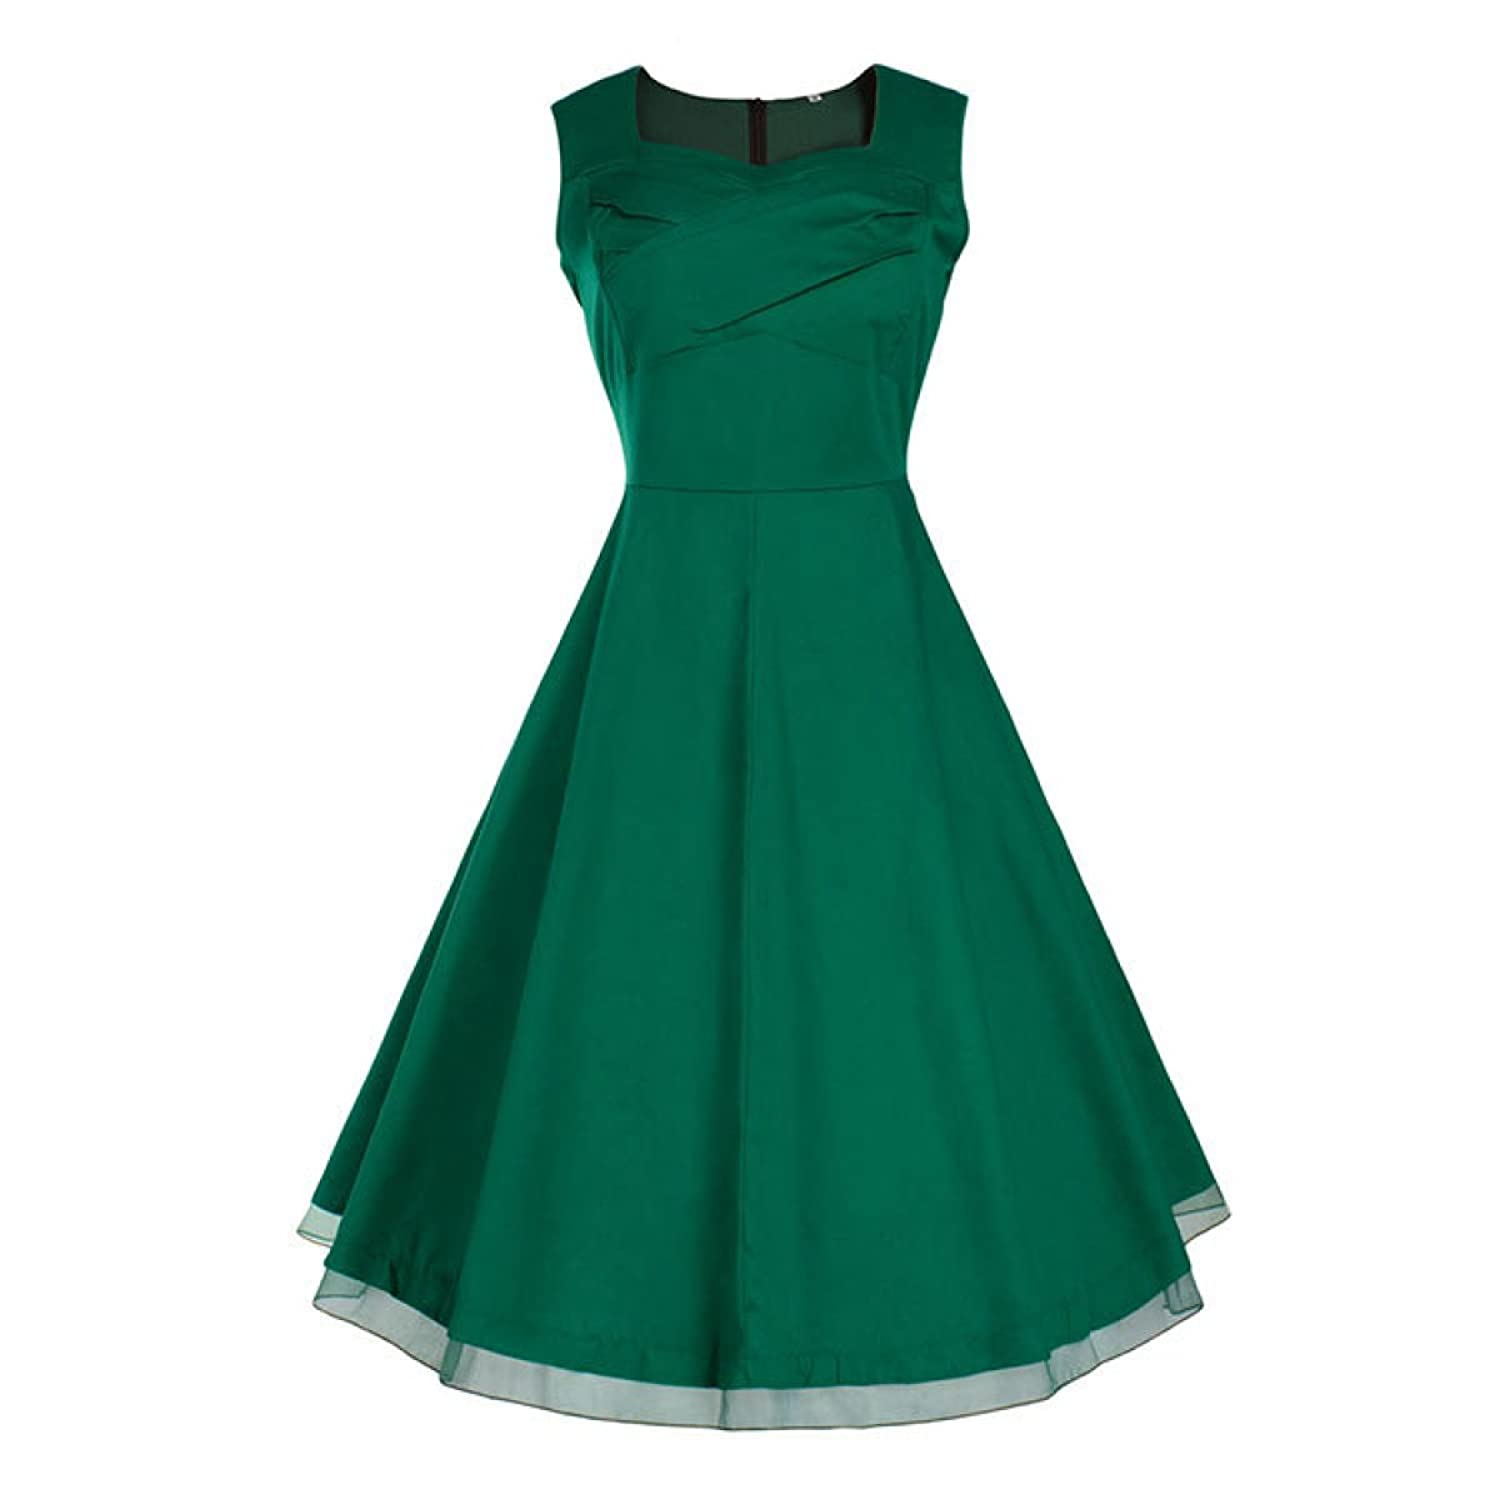 Frau Retro-Taille Dünnes Sleeveless Kleid,DarkGreen-L